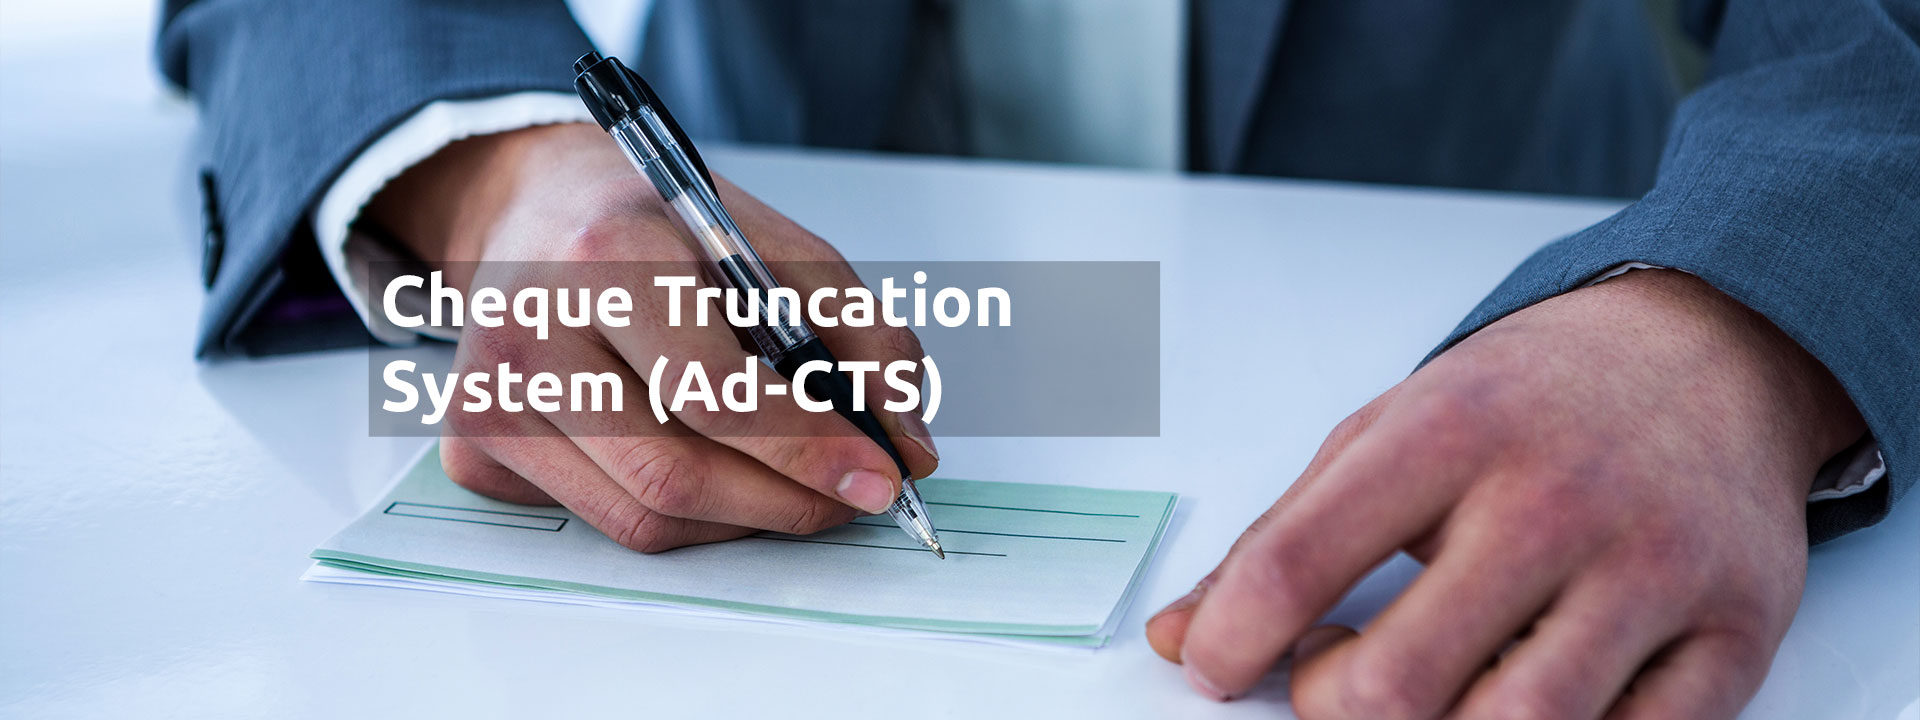 Ad-CTS (Cheque Truncation System)